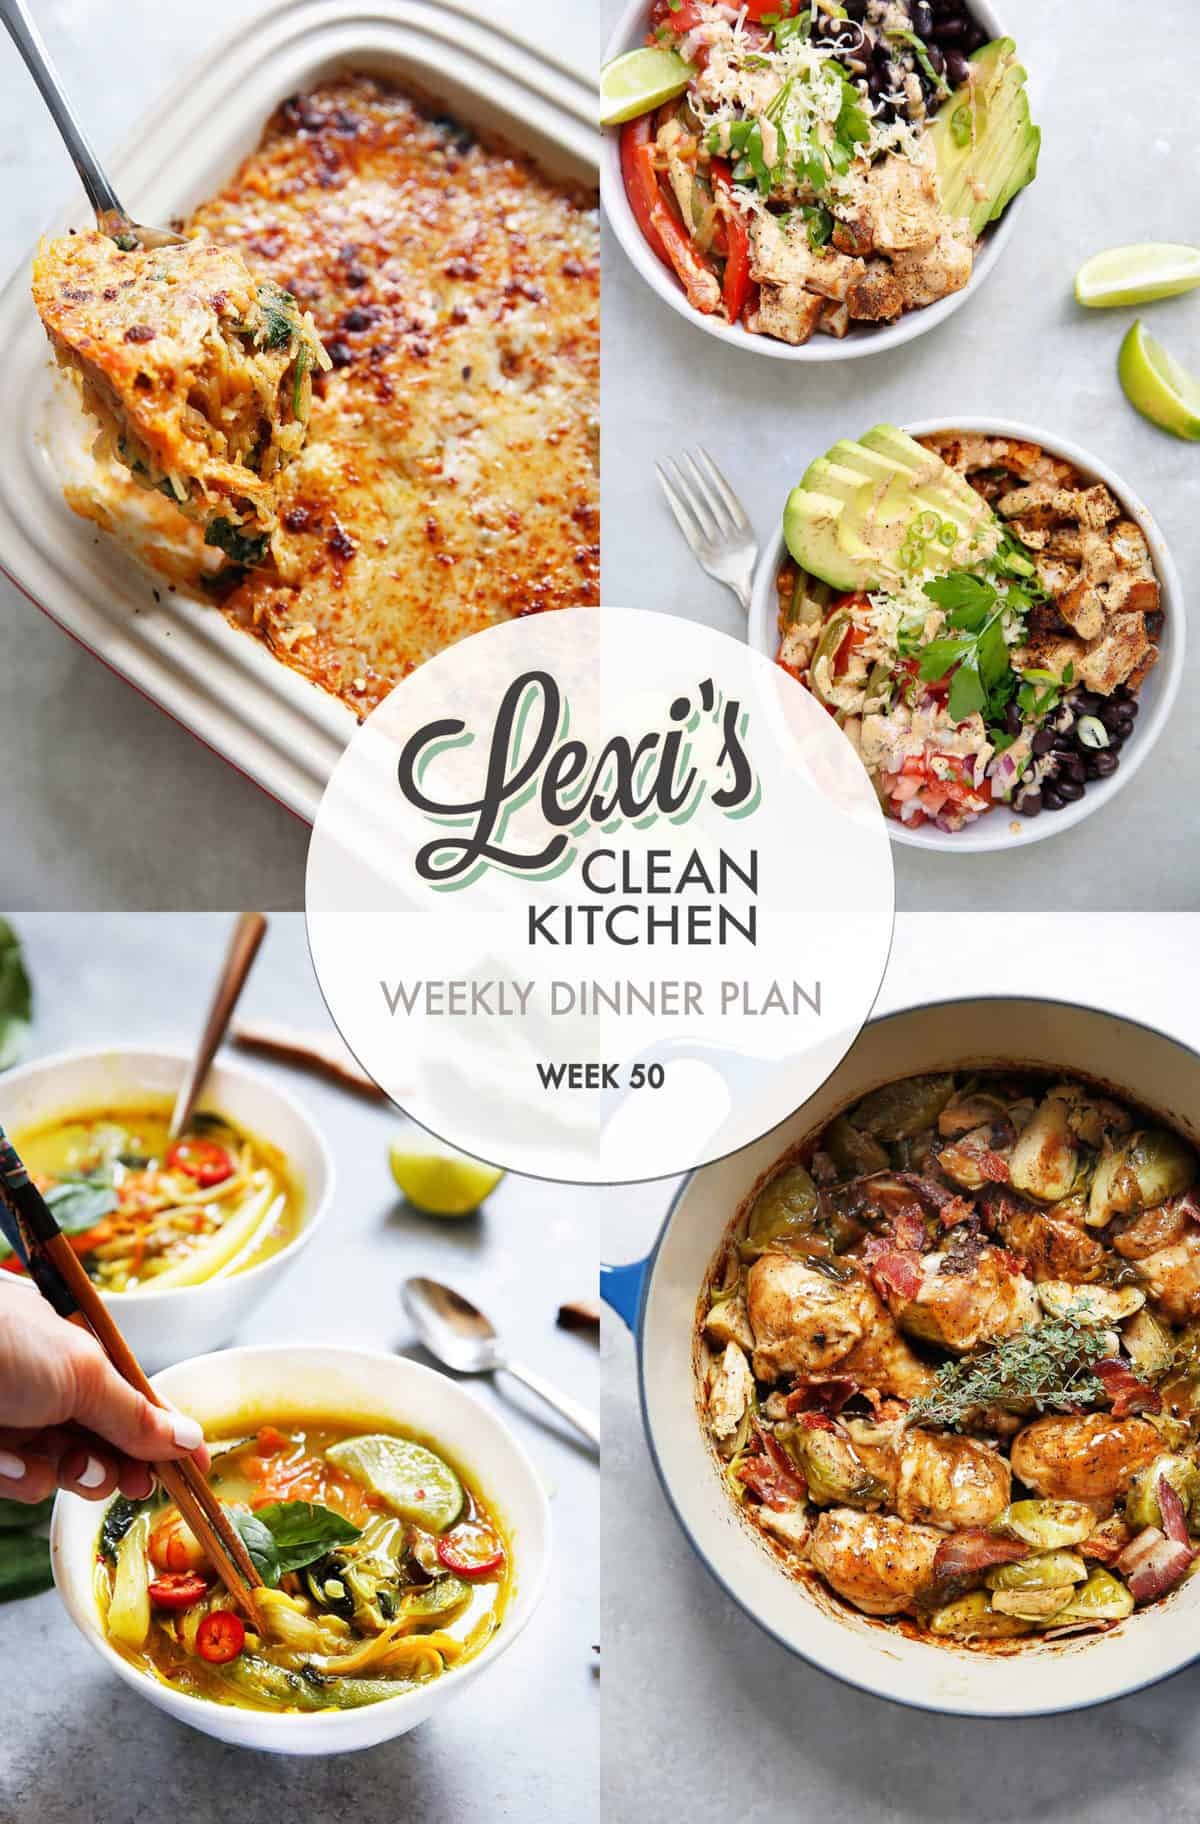 Lexi's Weekly Dinner Plan Week 50